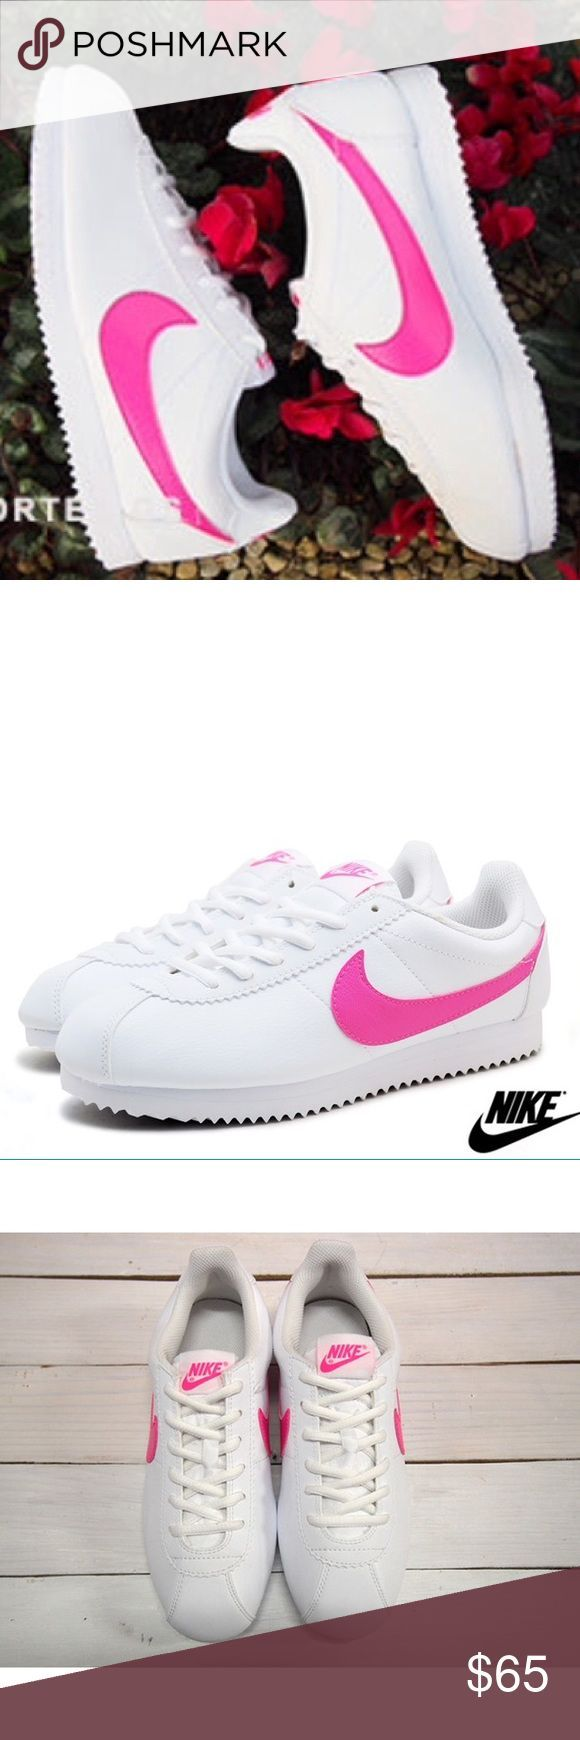 Awesome Nike Shoes Nike Cortez white pink womens size 8.5 shoes Shoes are a size 7 youth which is a... Check more at http://24shopme.tk/fashion/nike-shoes-nike-cortez-white-pink-womens-size-8-5-shoes-shoes-are-a-size-7-youth-which-is-a/